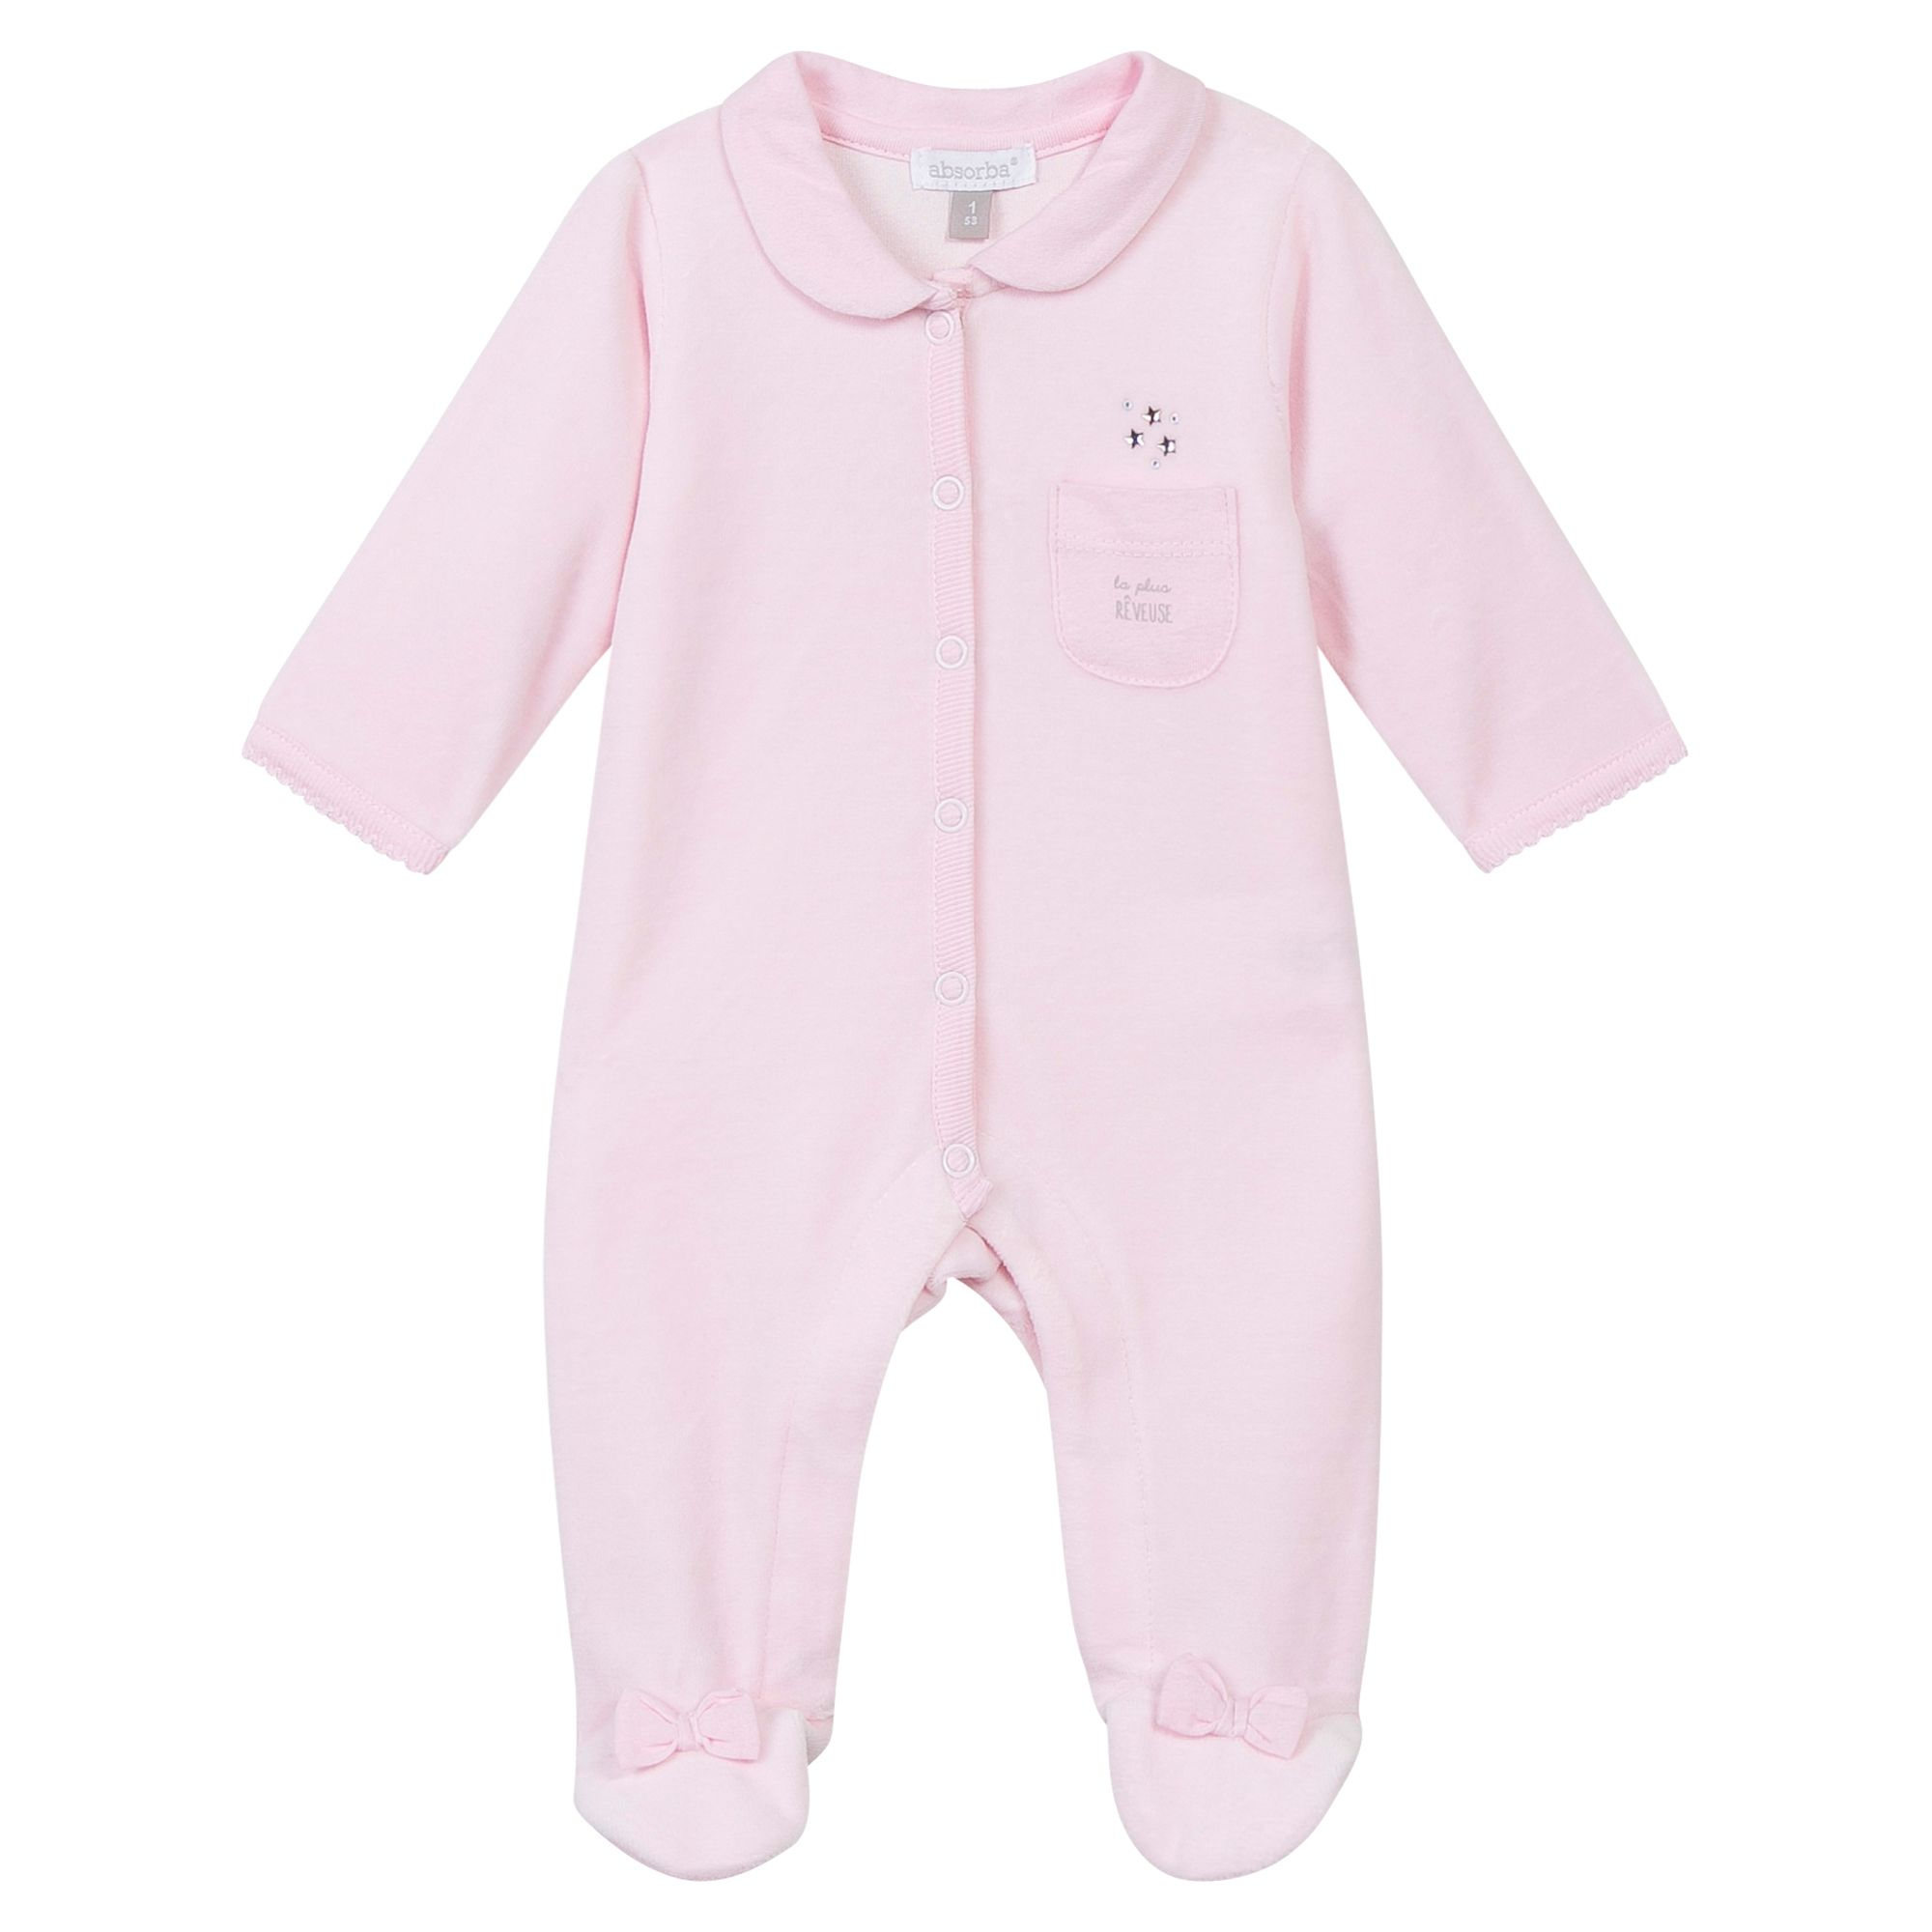 Absorba Absorba Baby Girls Bow Embroidered Sleepsuit, Pink